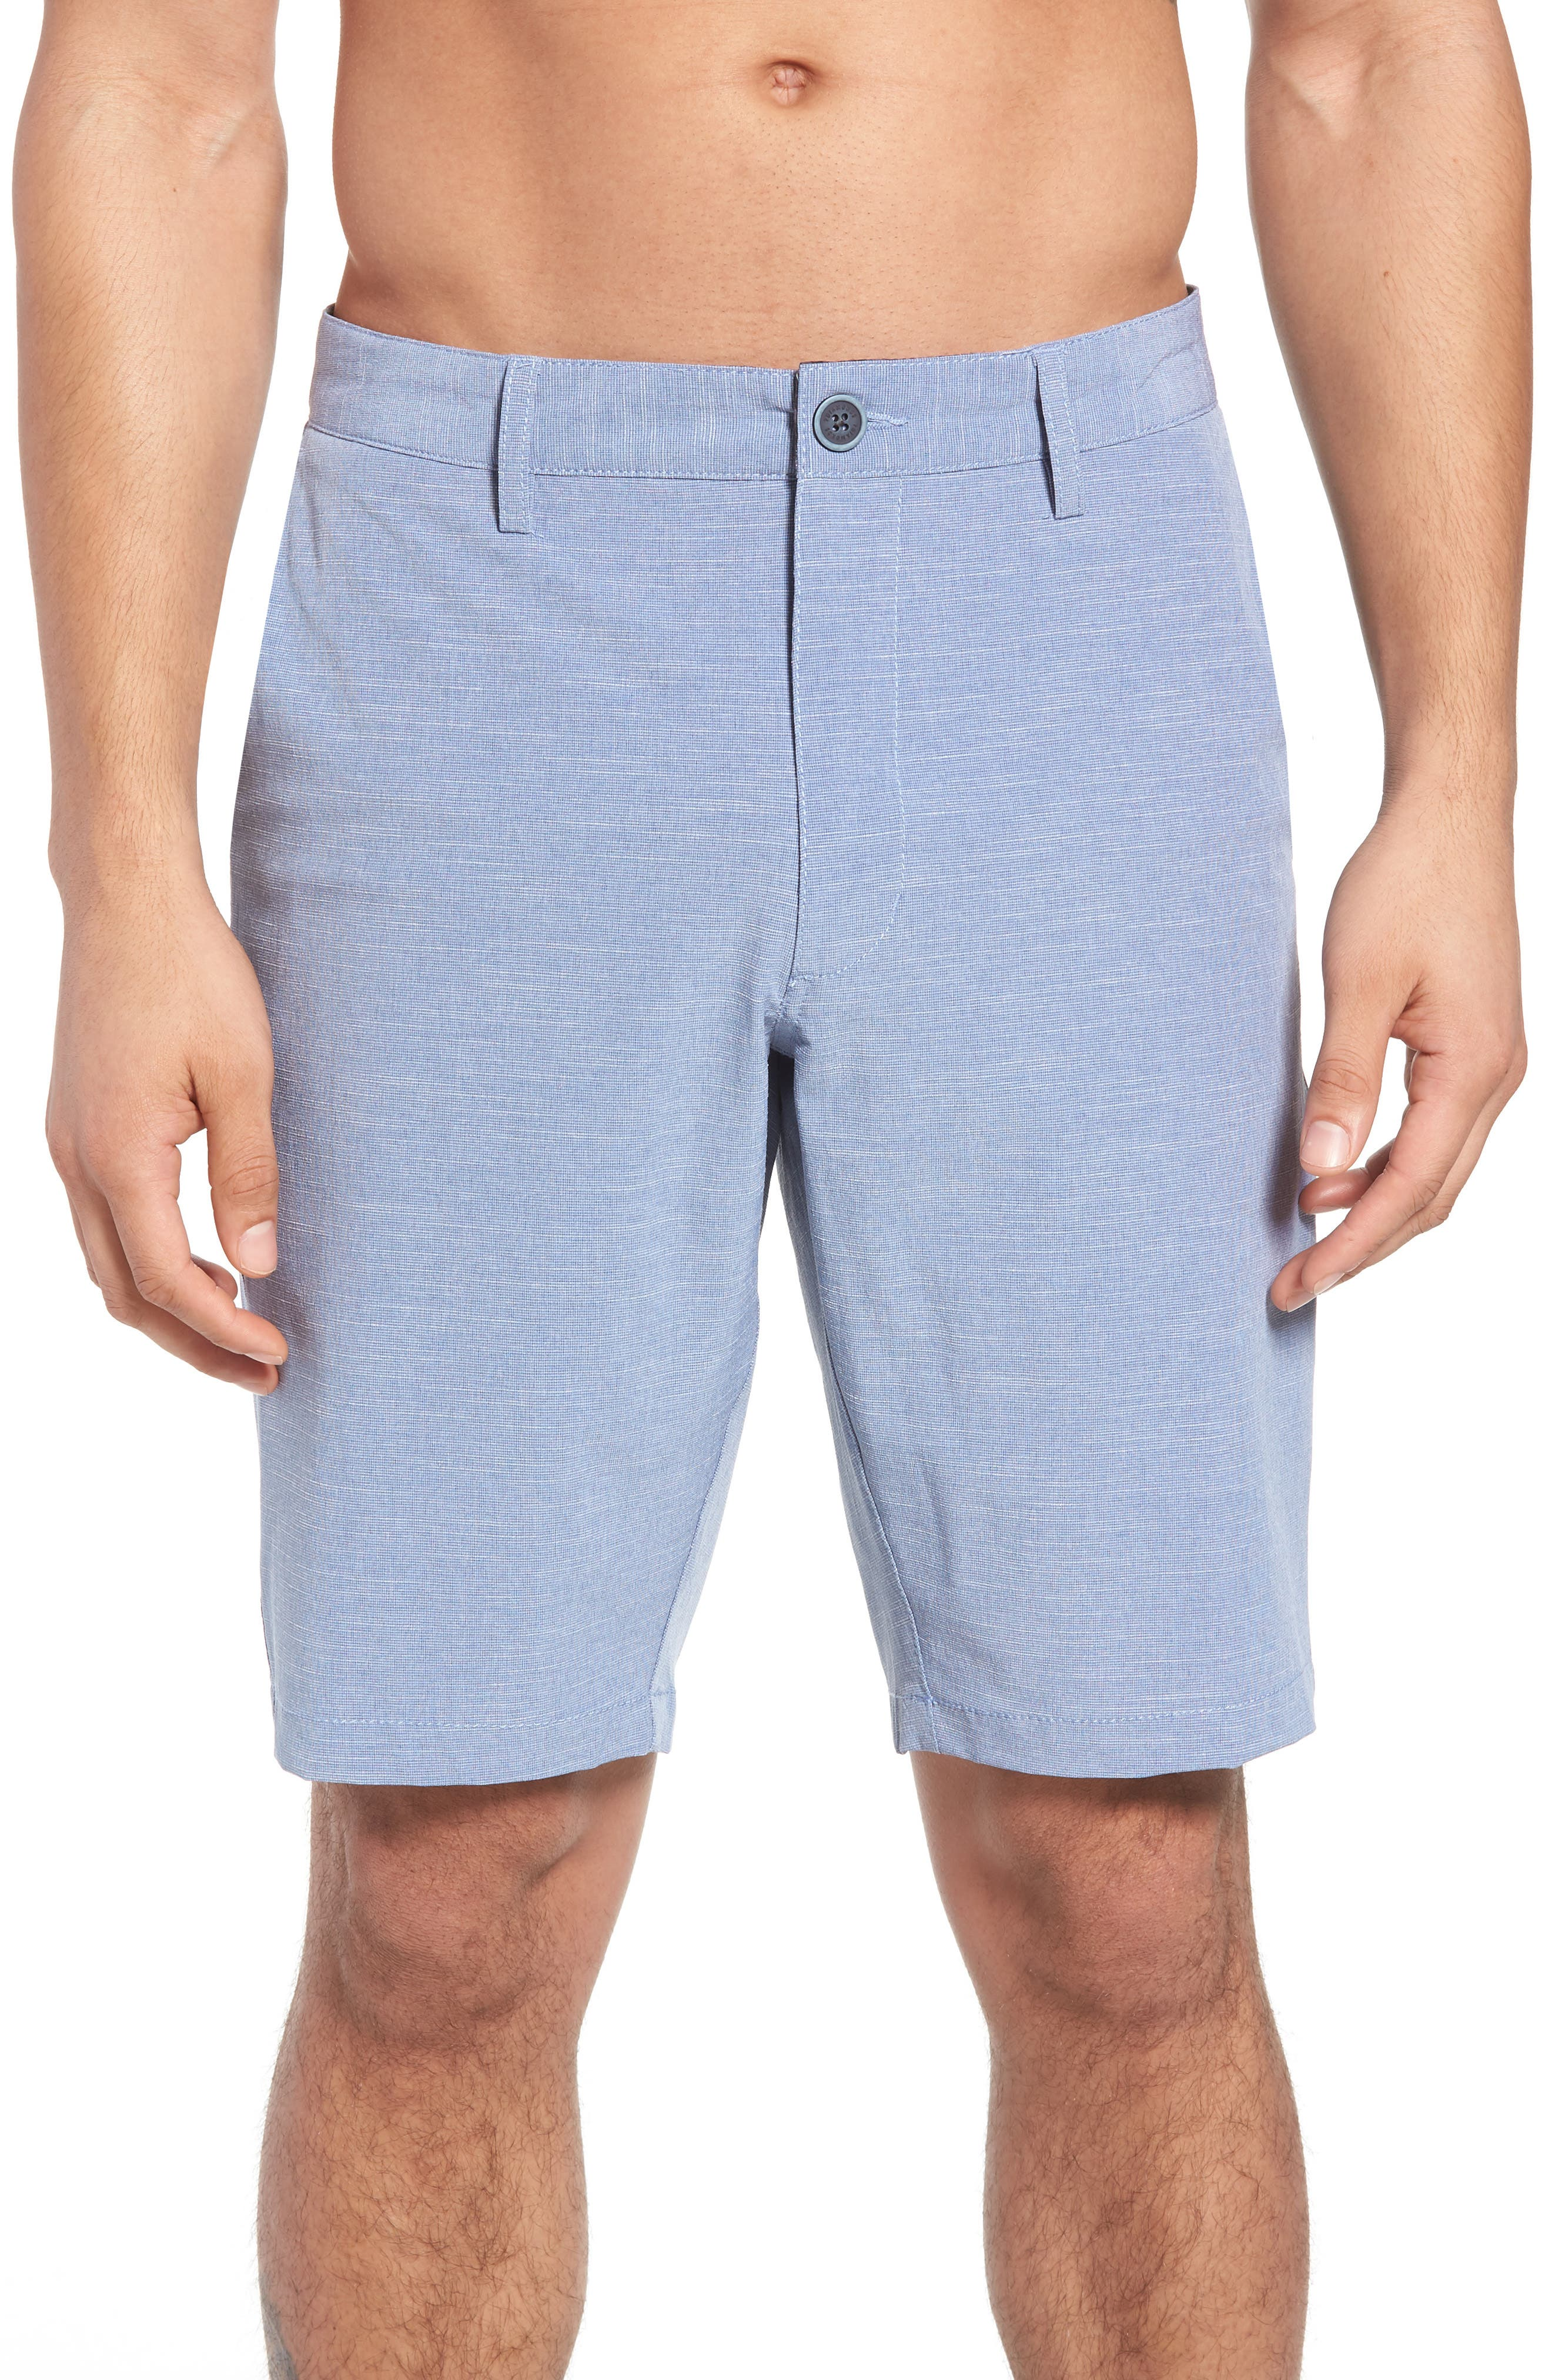 Existence Stretch Shorts,                             Alternate thumbnail 15, color,